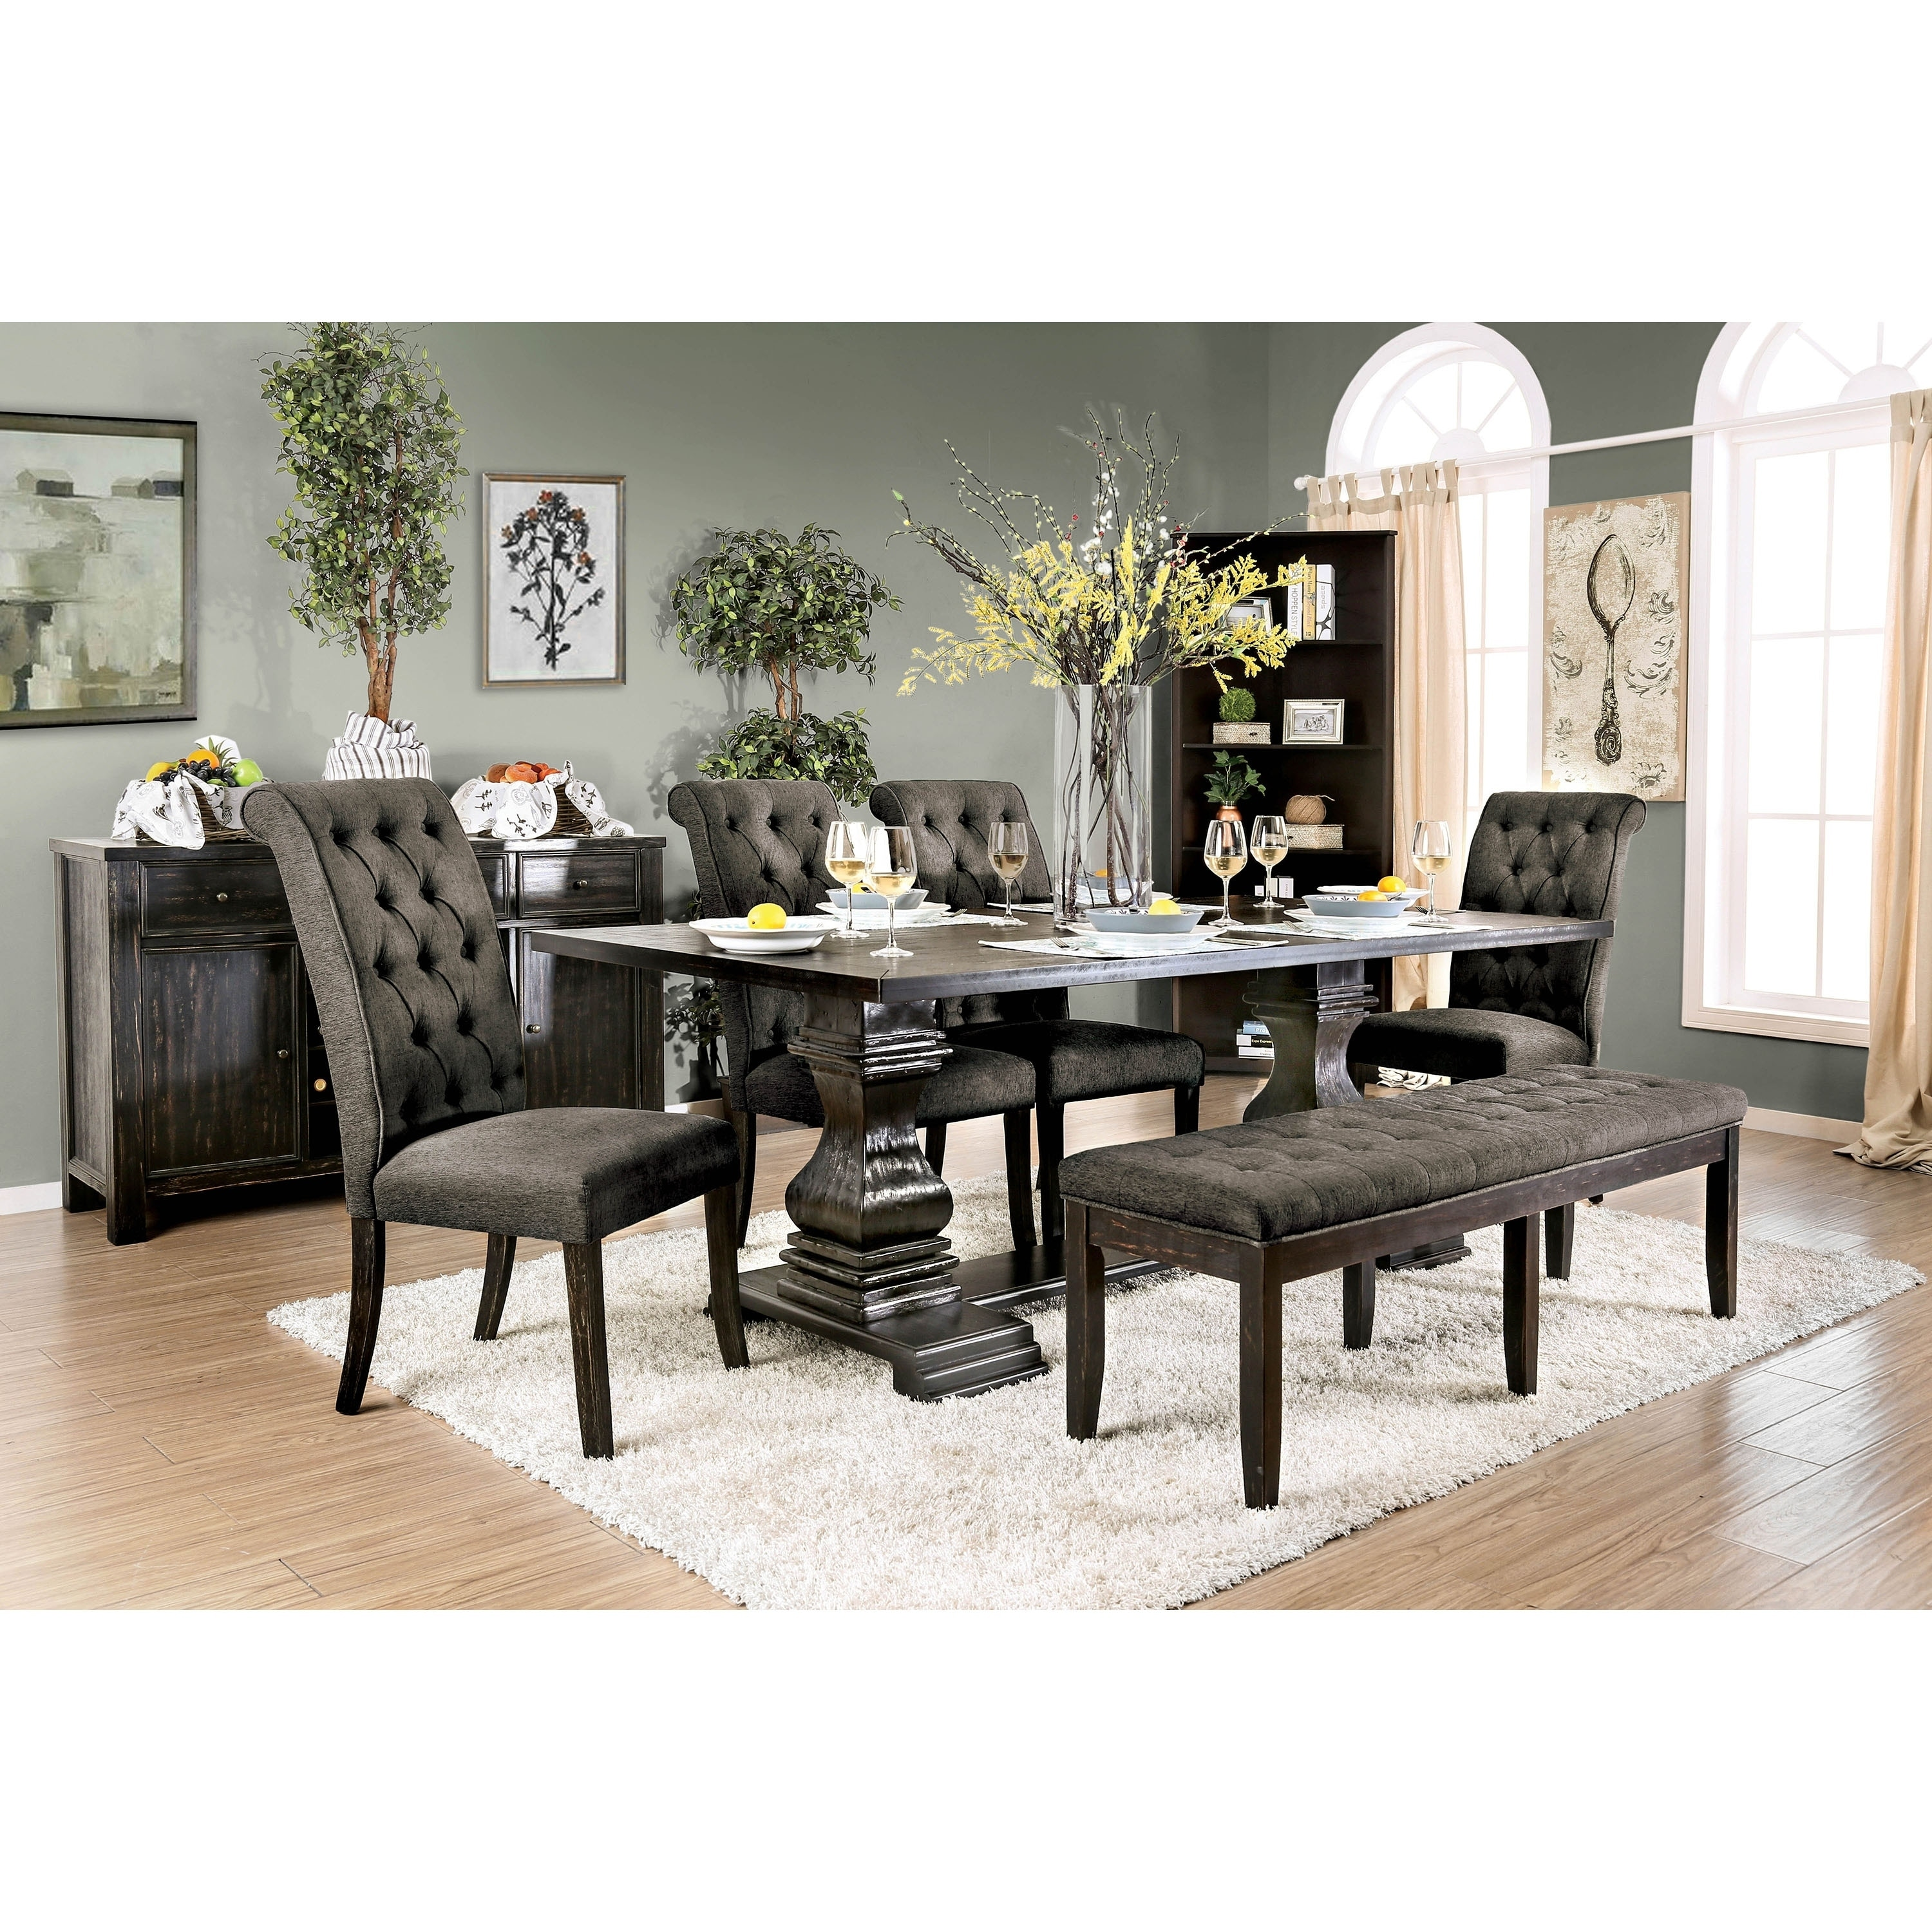 Furniture Of America Melta Rustic Black 6 Piece Dining Table Set With Bench Overstock 29844369